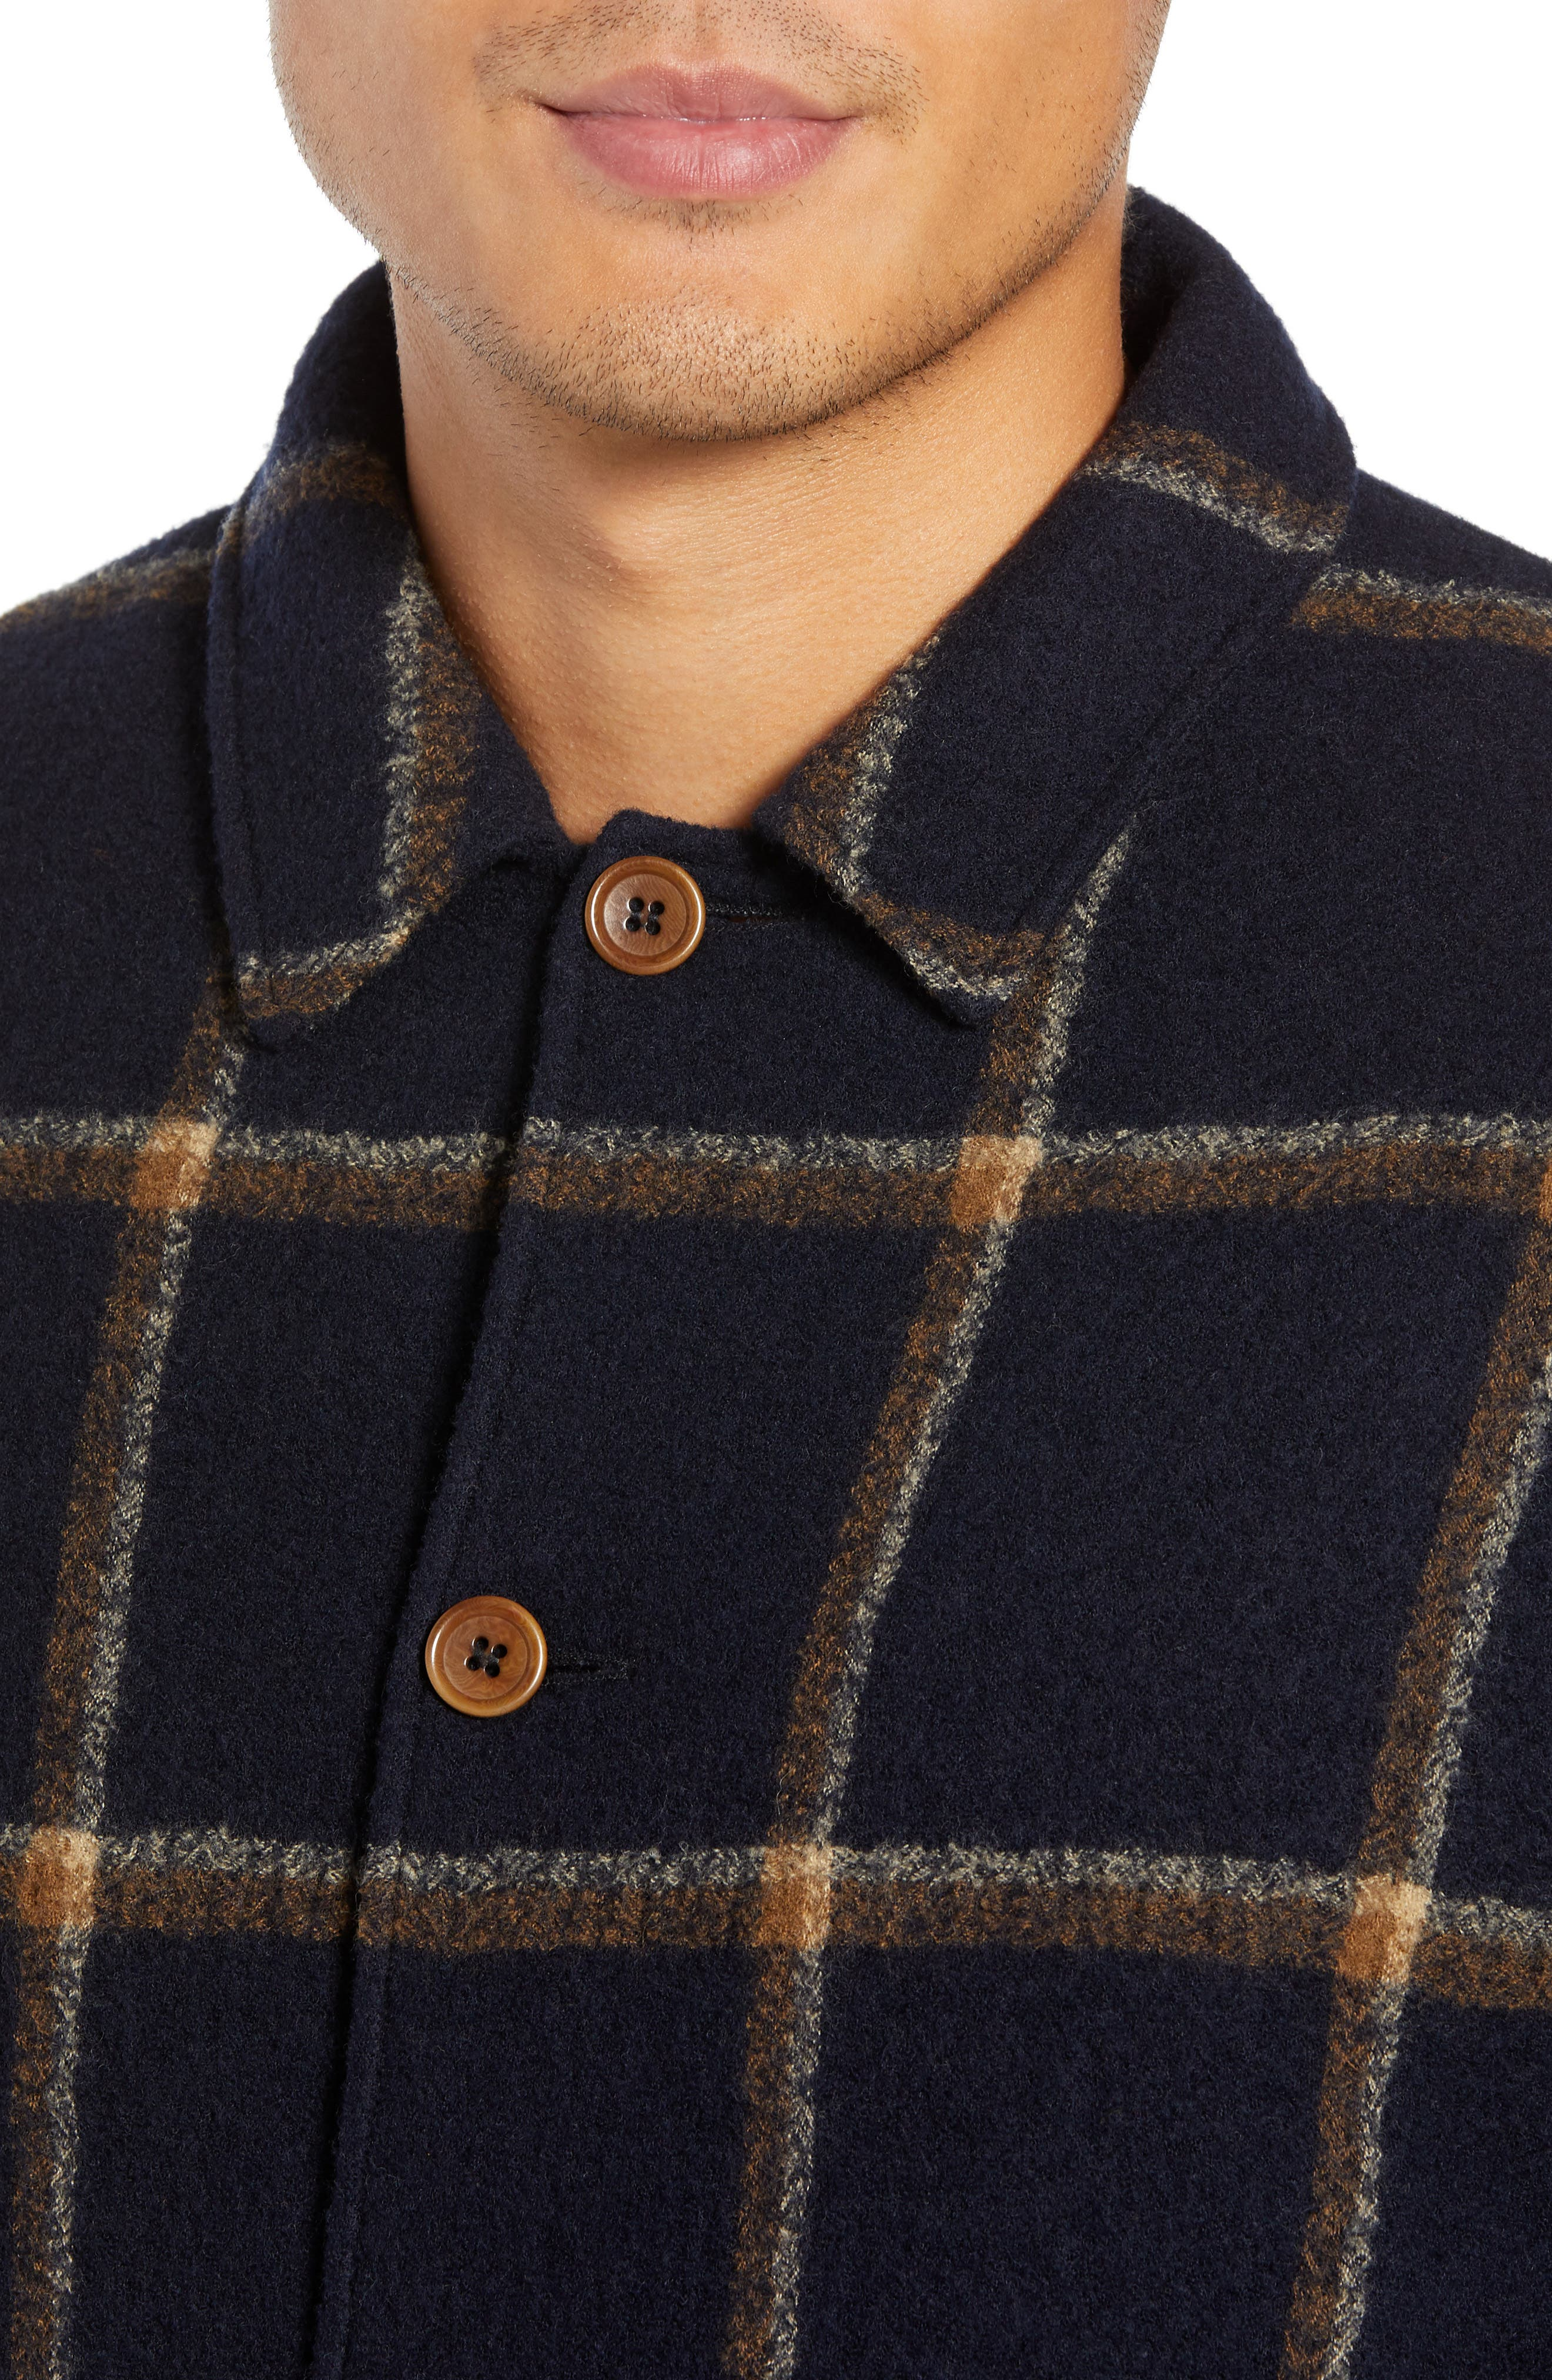 Regular Fit Faux Shearling Lined Check Wool Groundhog Jacket,                             Alternate thumbnail 4, color,                             NAVY